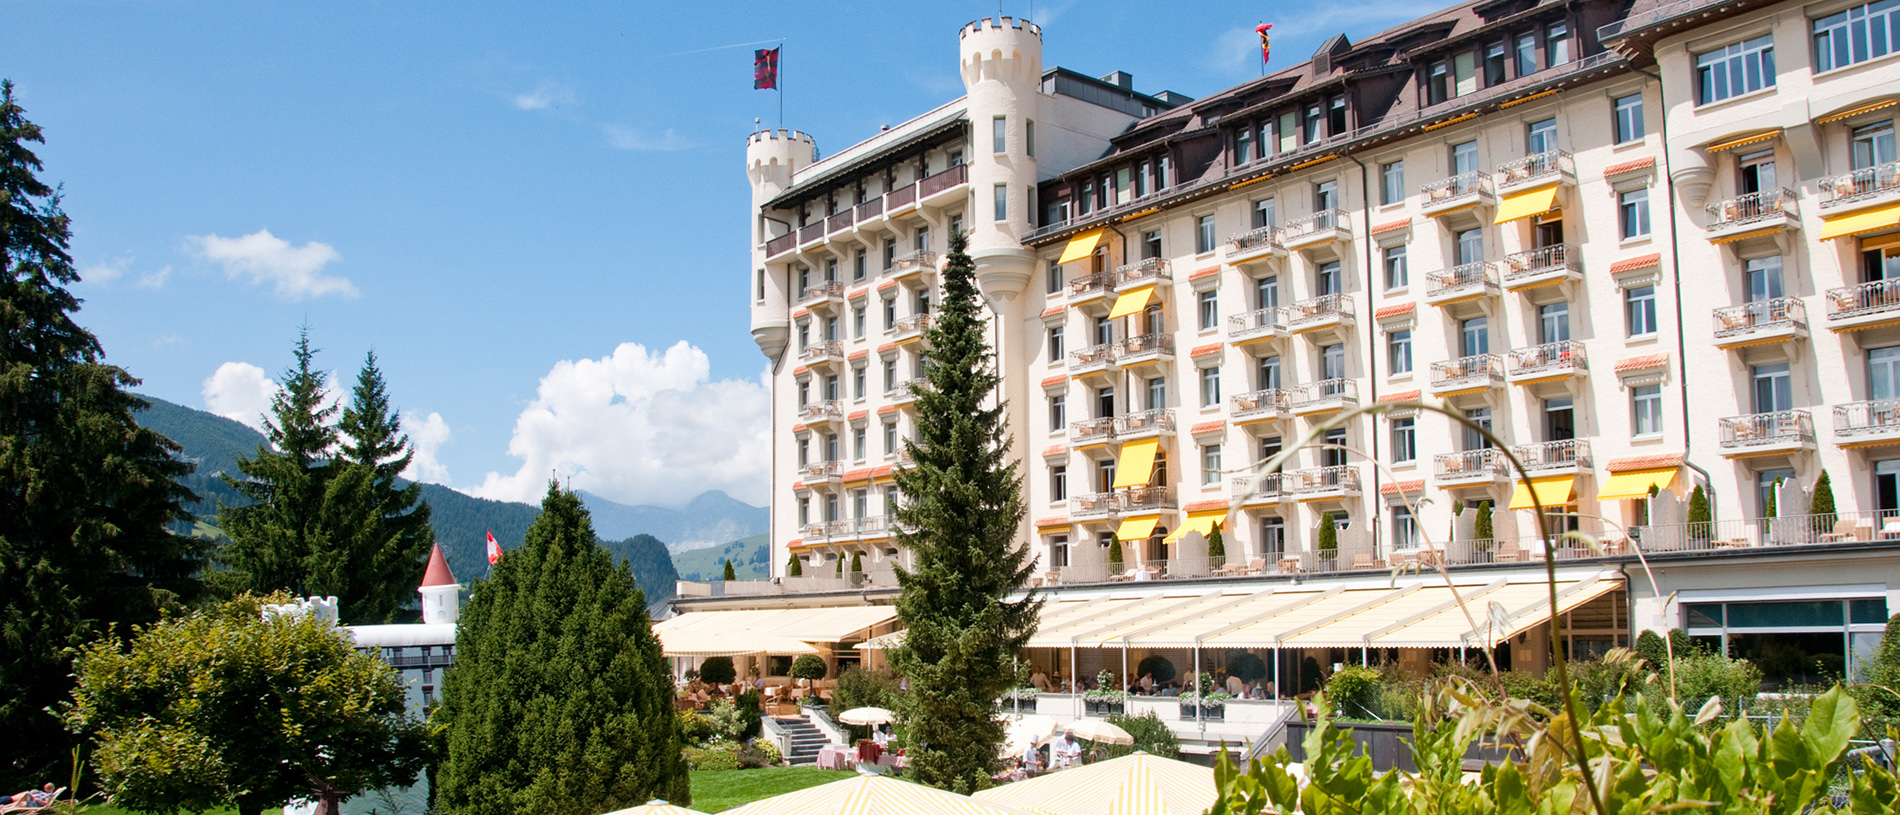 Summer at Gstaad Palace